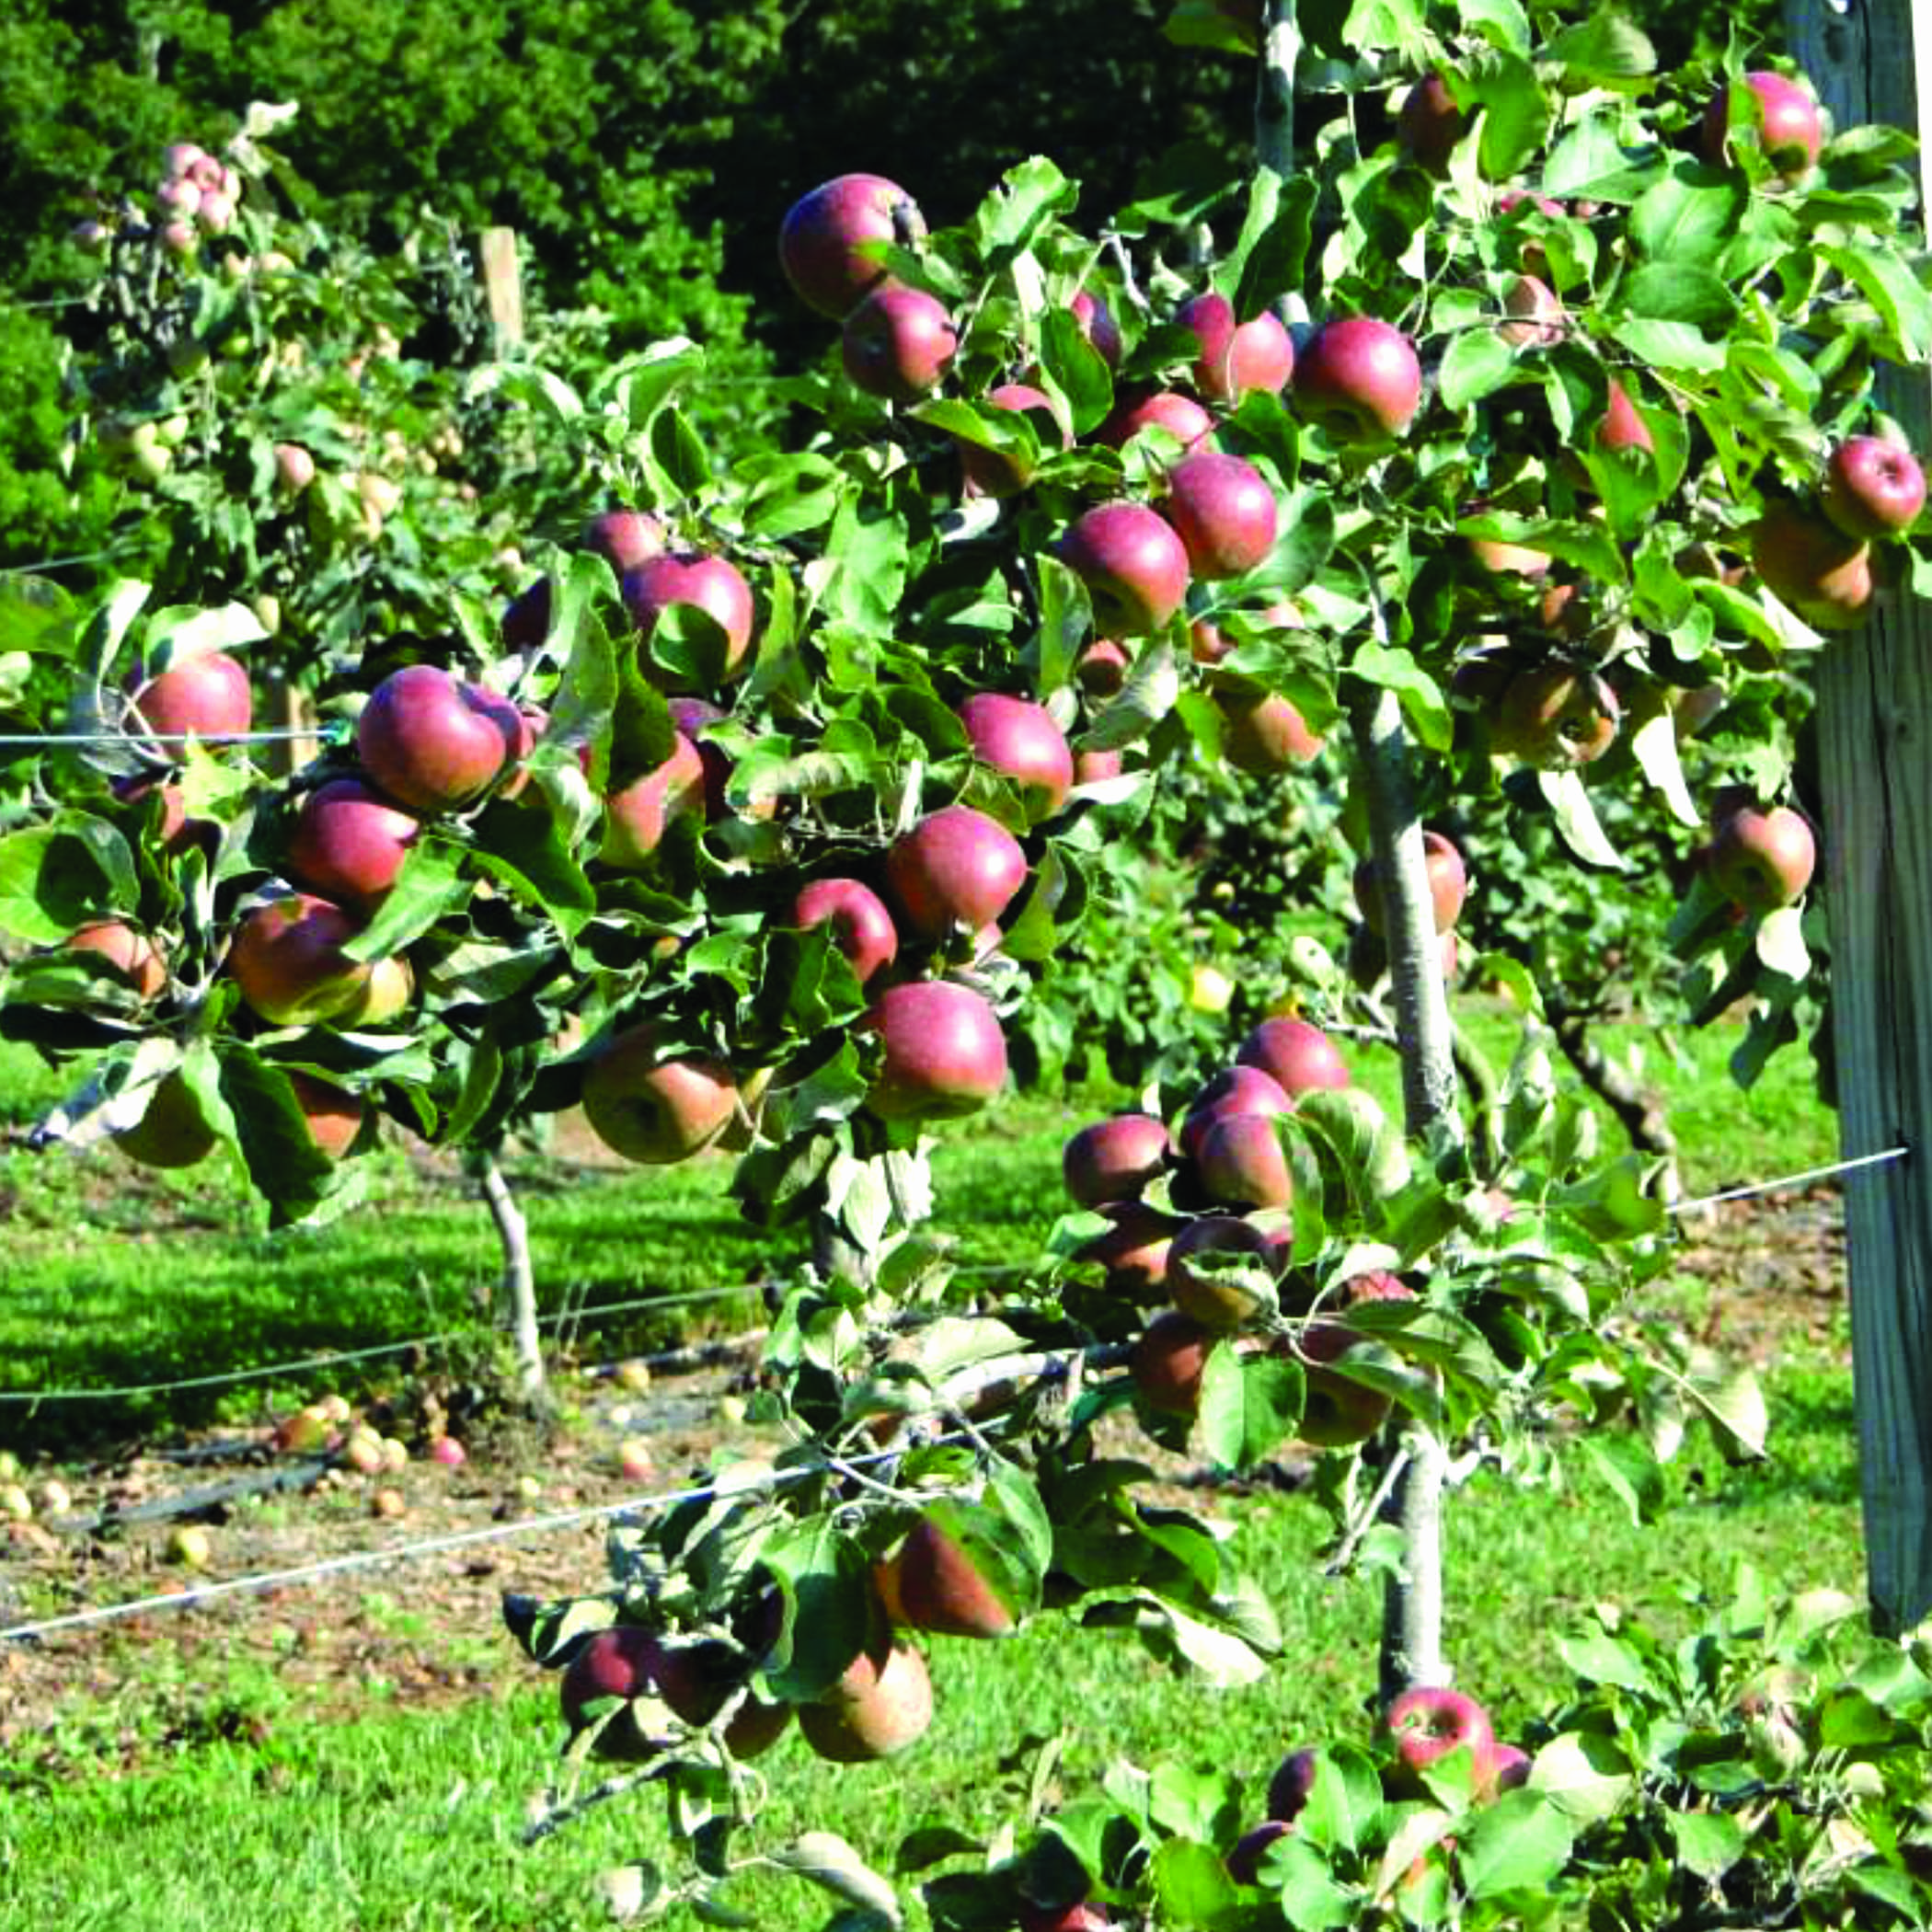 An espaliered apple tree filled with ripe red apples